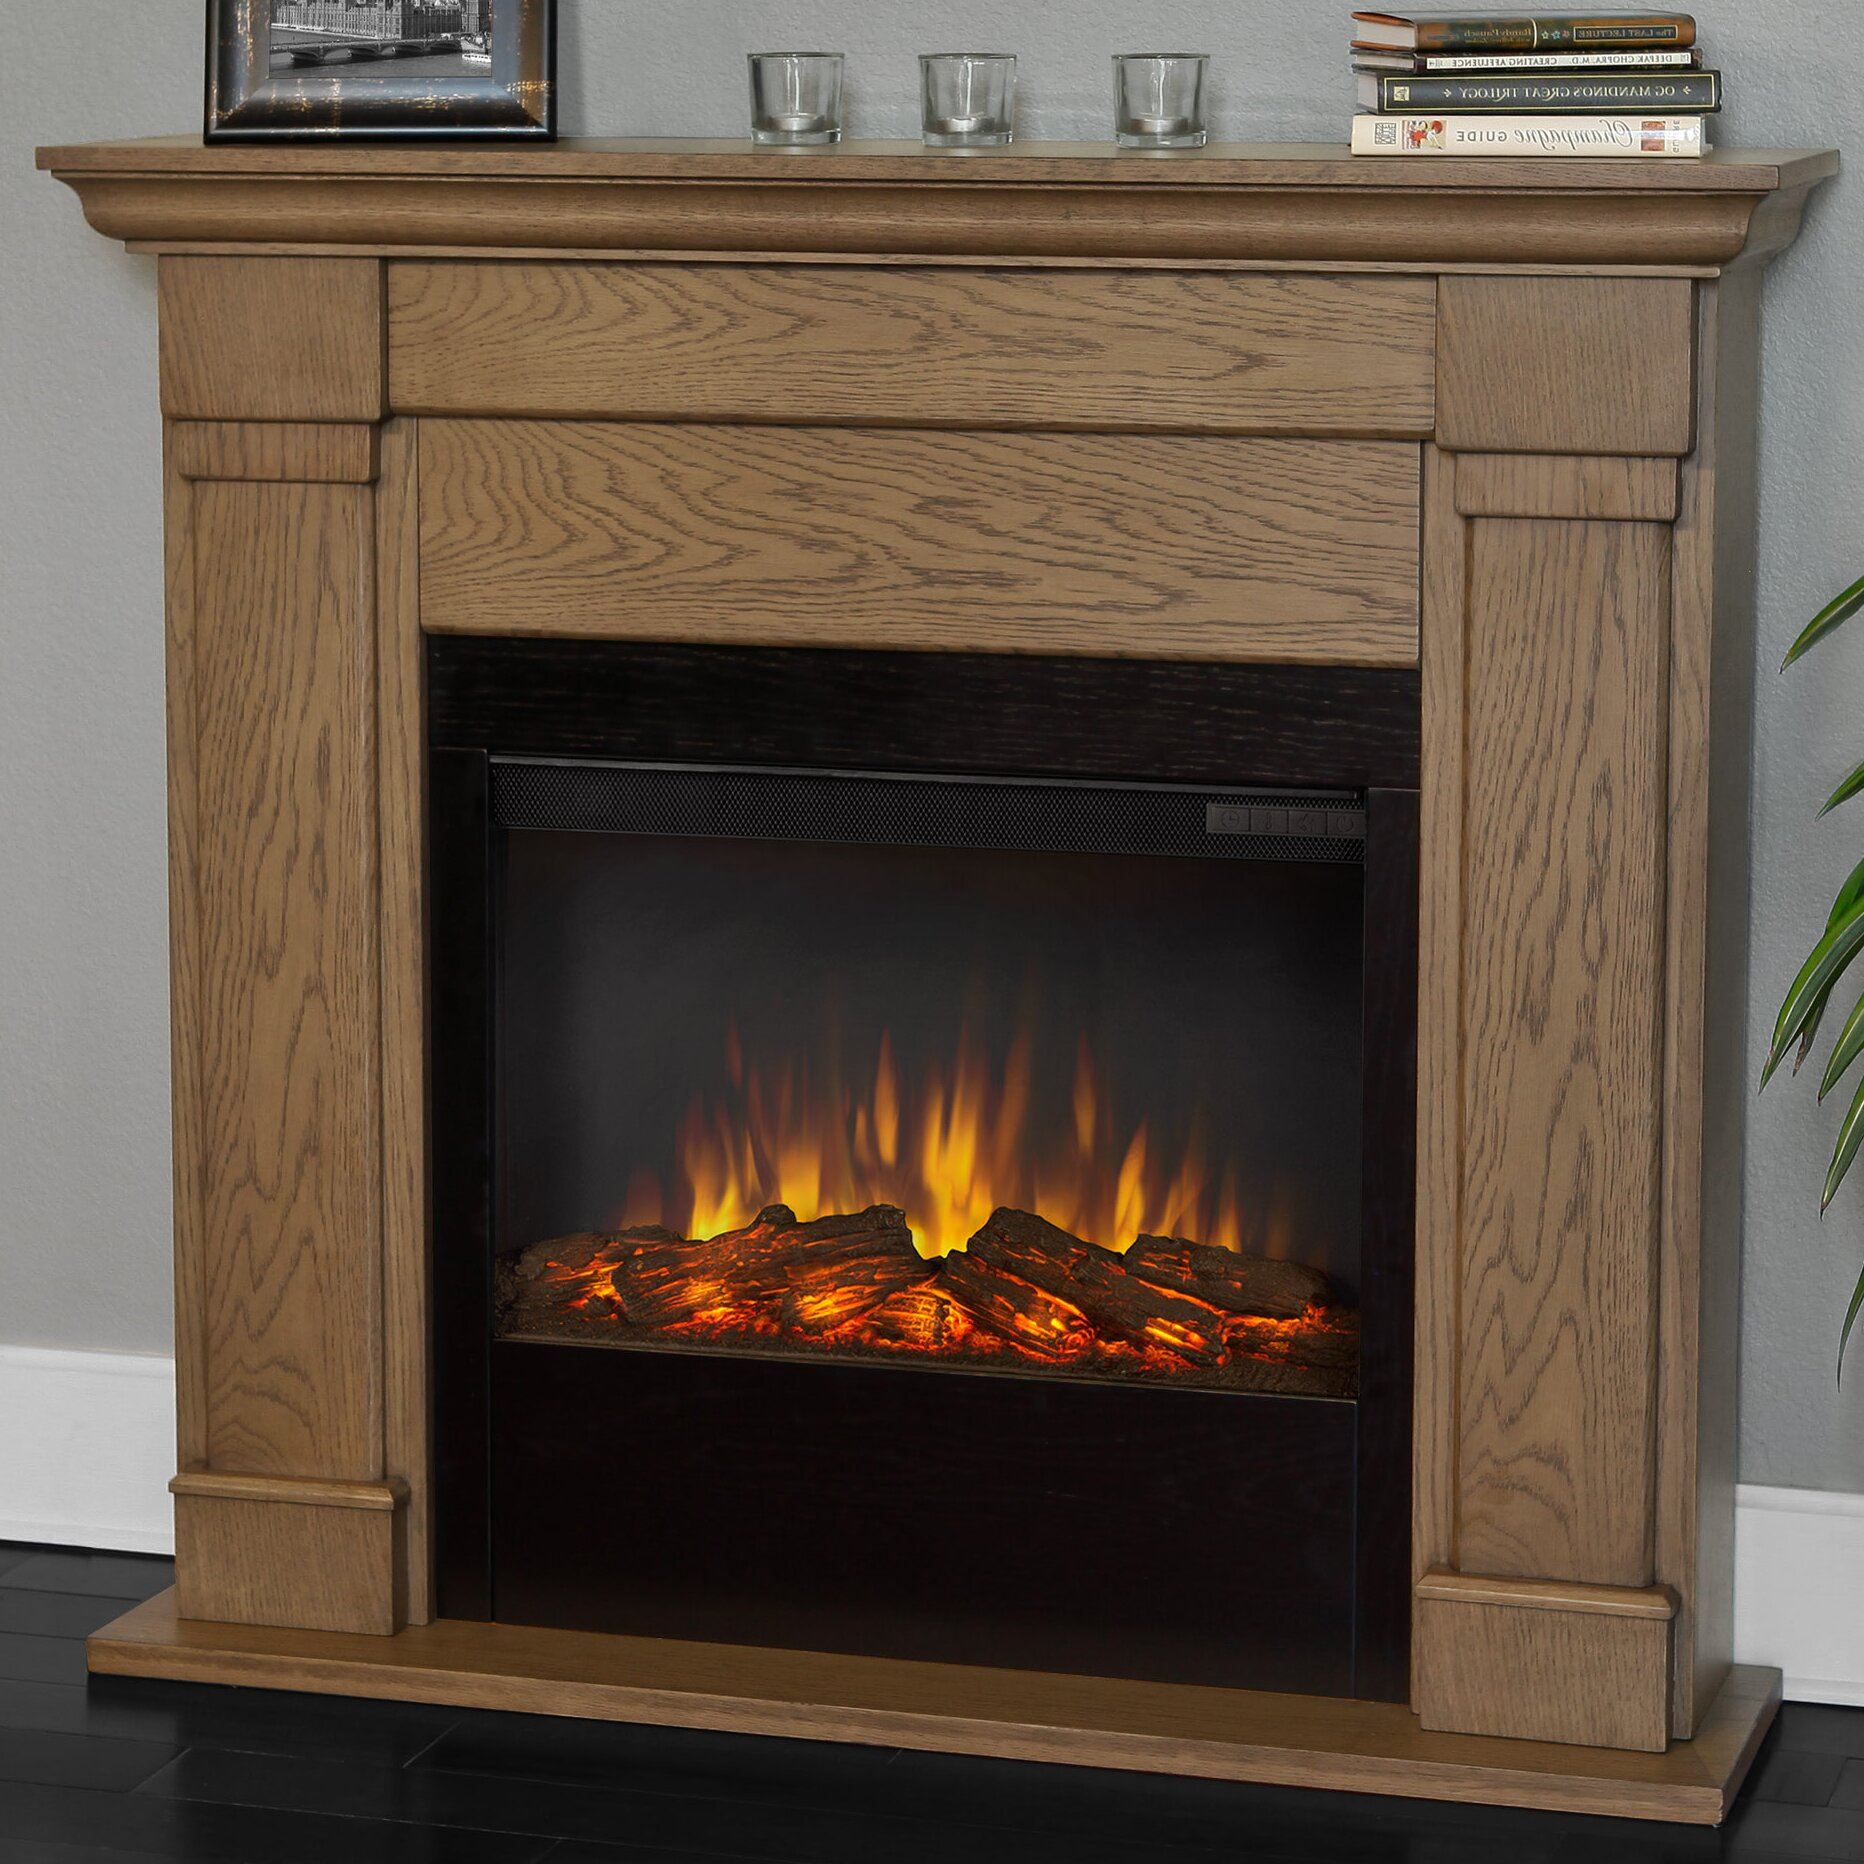 Slimline Wall Mounted Electric Fires: Real Flame Slim Lowry Wall Mount Electric Fireplace